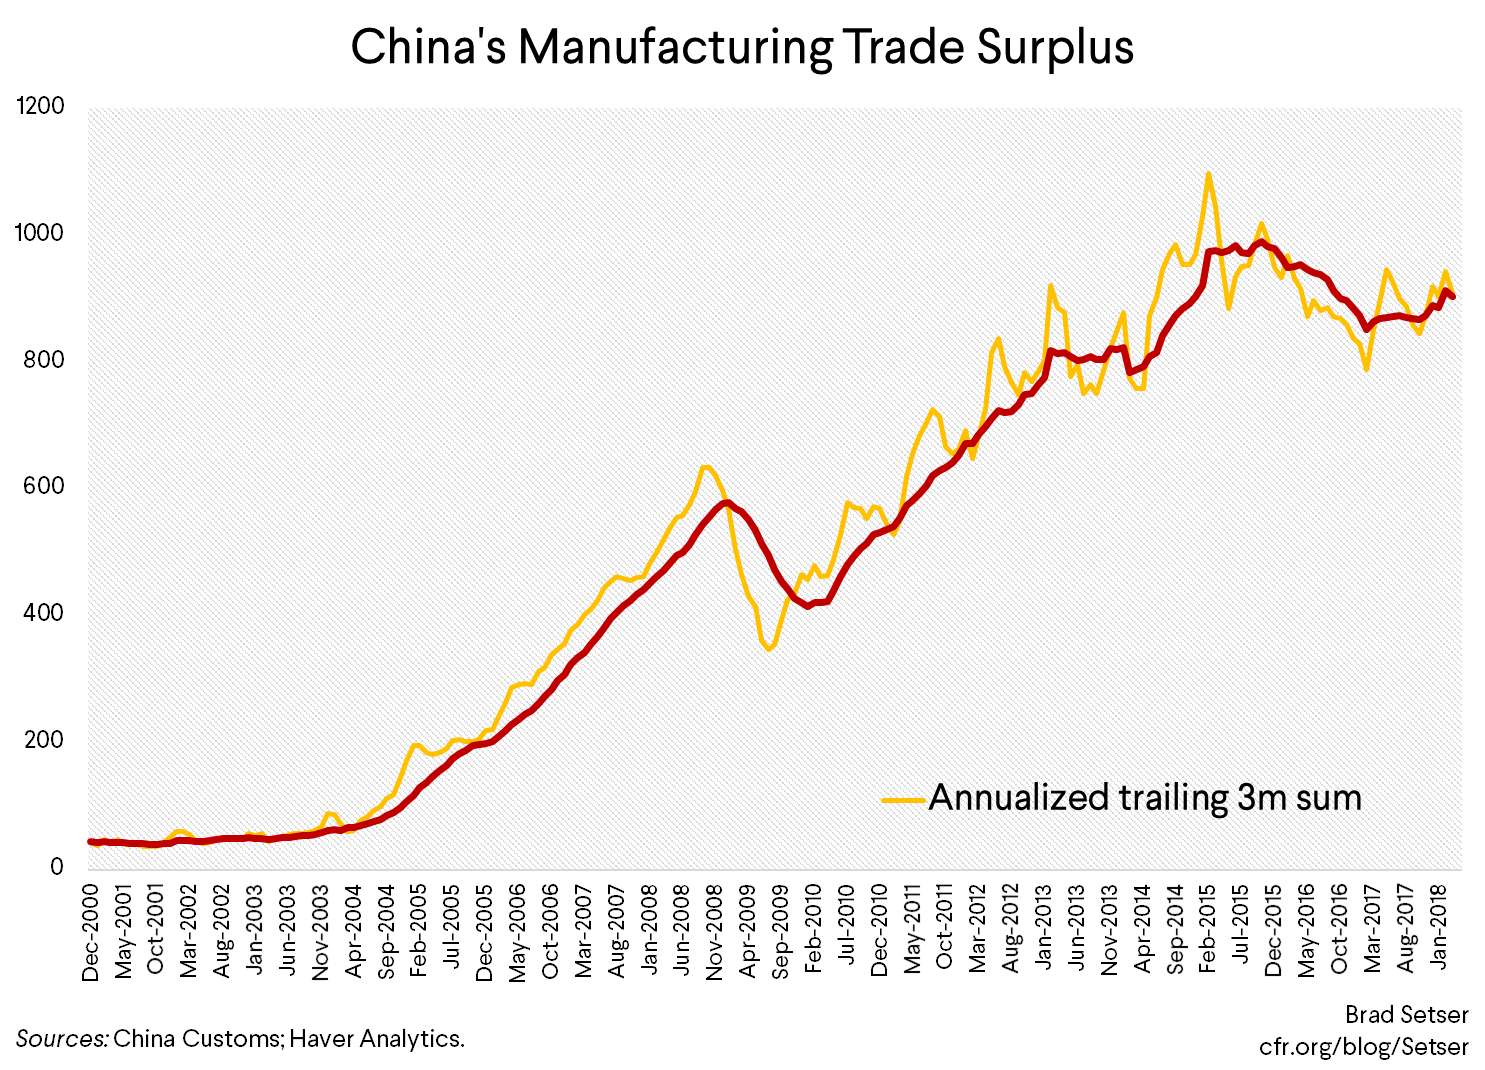 How Durable is China's Rebalancing?